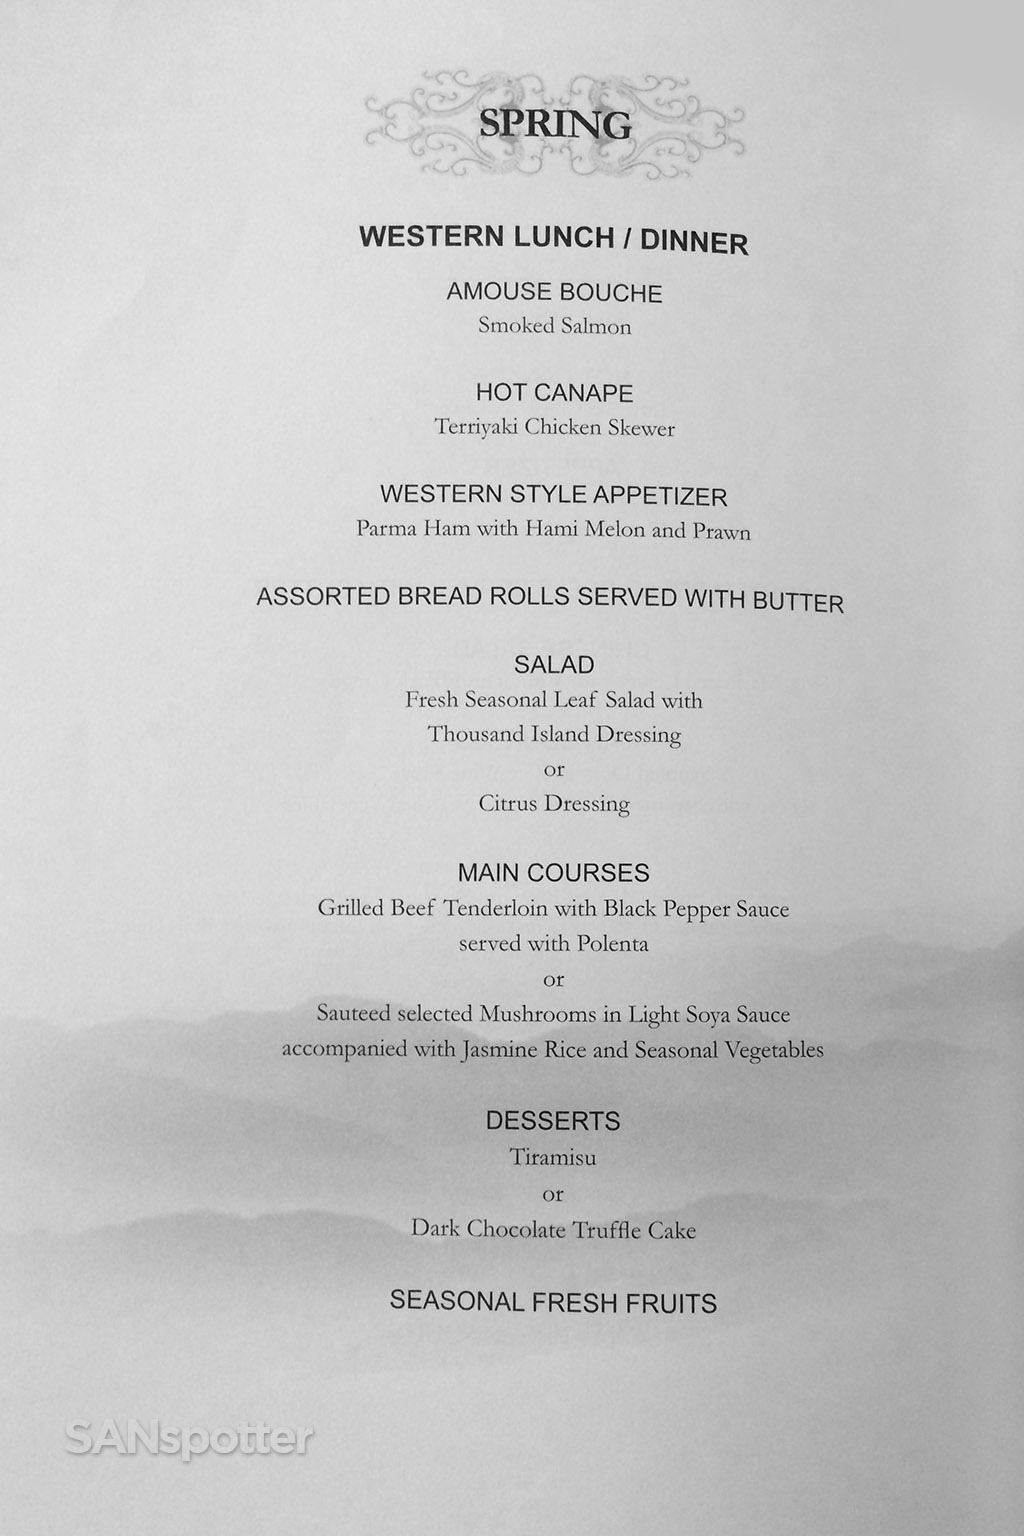 western lunch / dinner business class menu